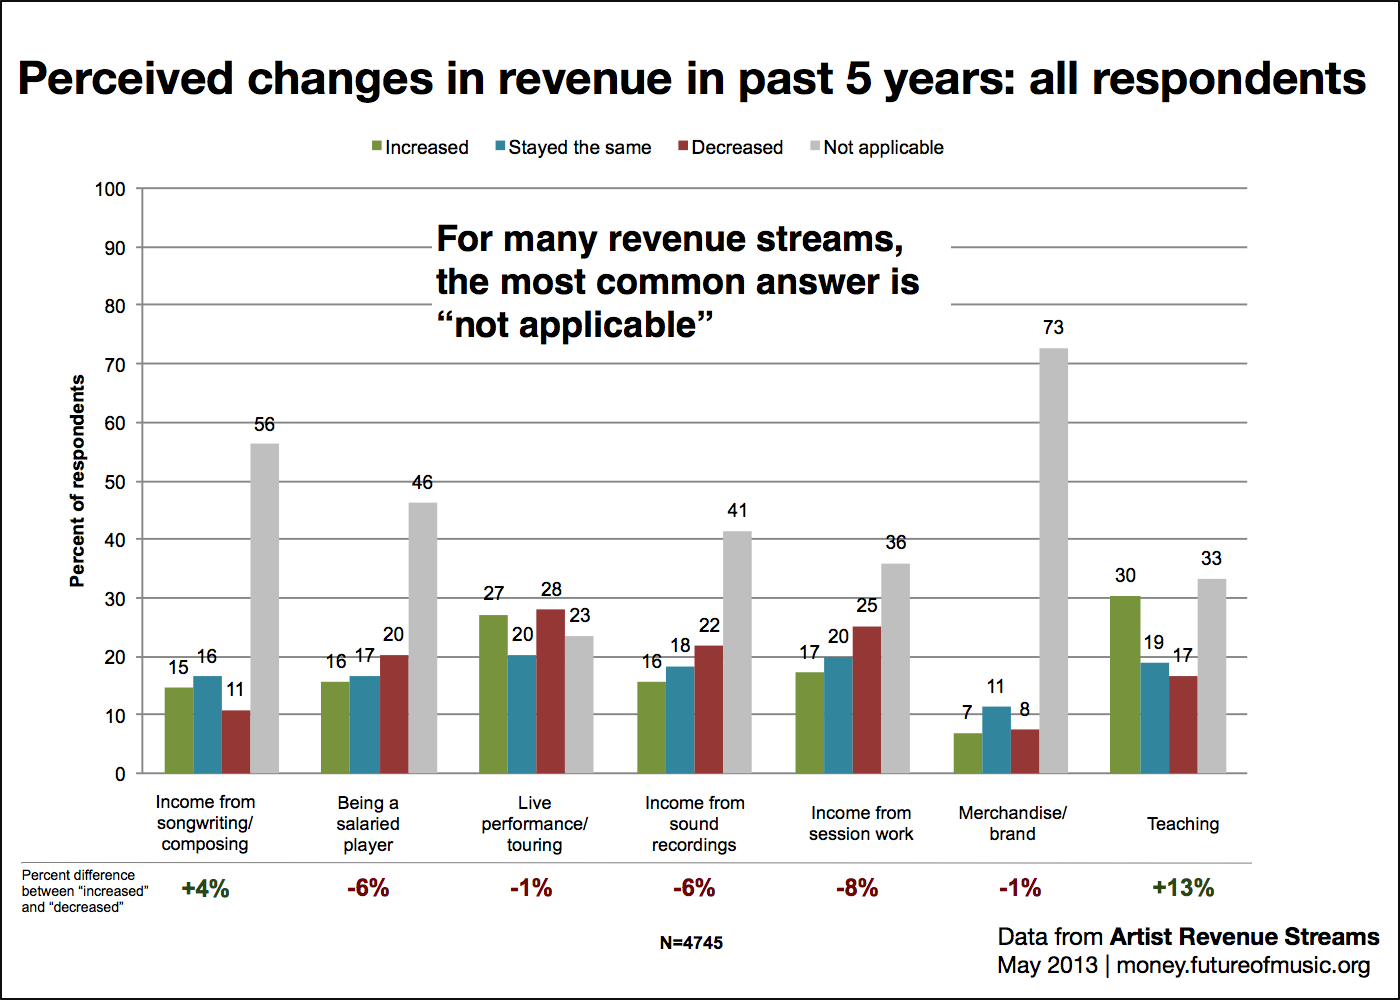 Perceived changes in revenue over past five years: all respondents